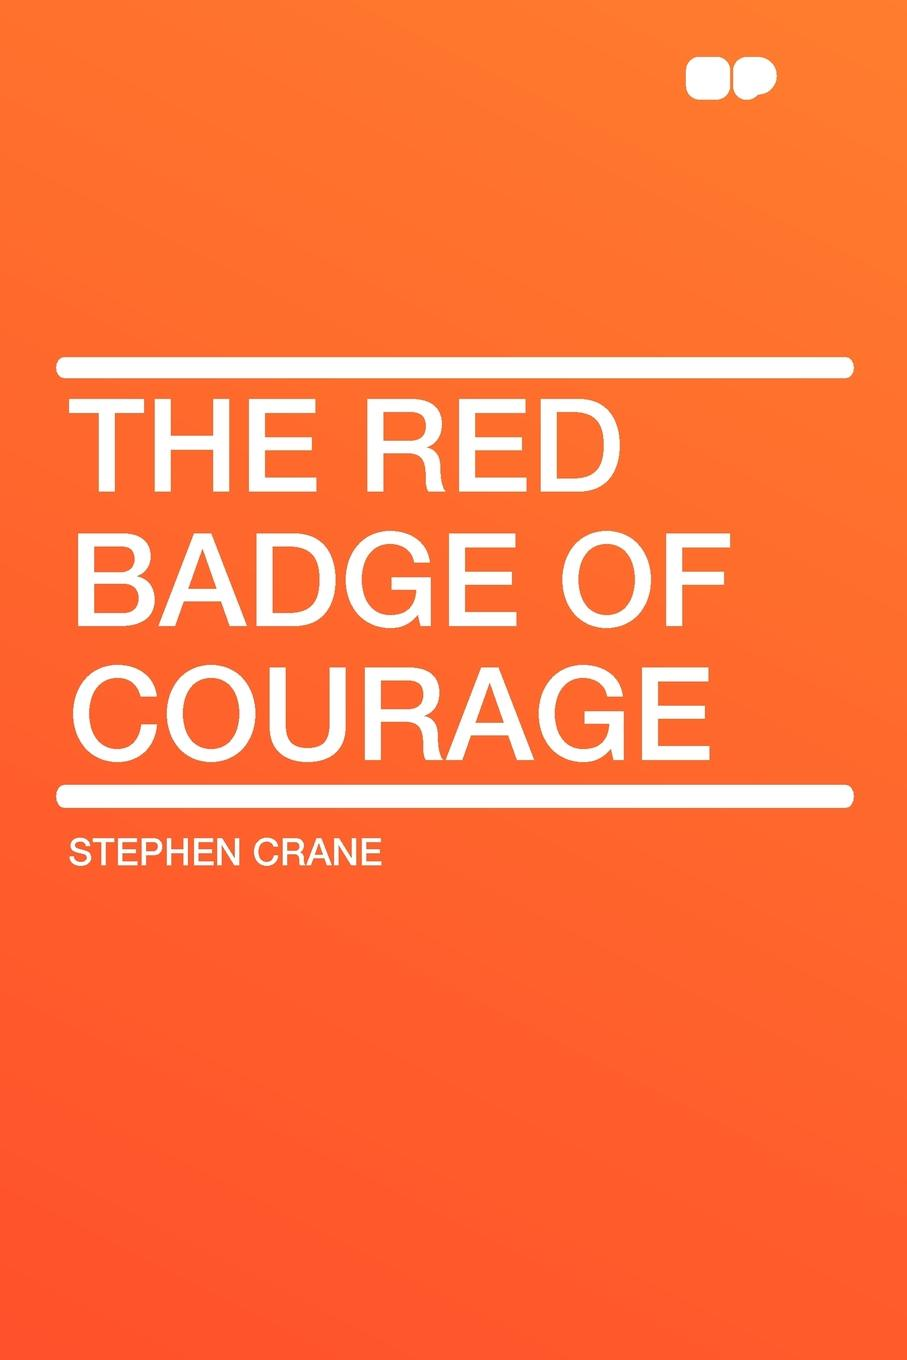 Stephen Crane The Red Badge of Courage stephen crane the complete poems